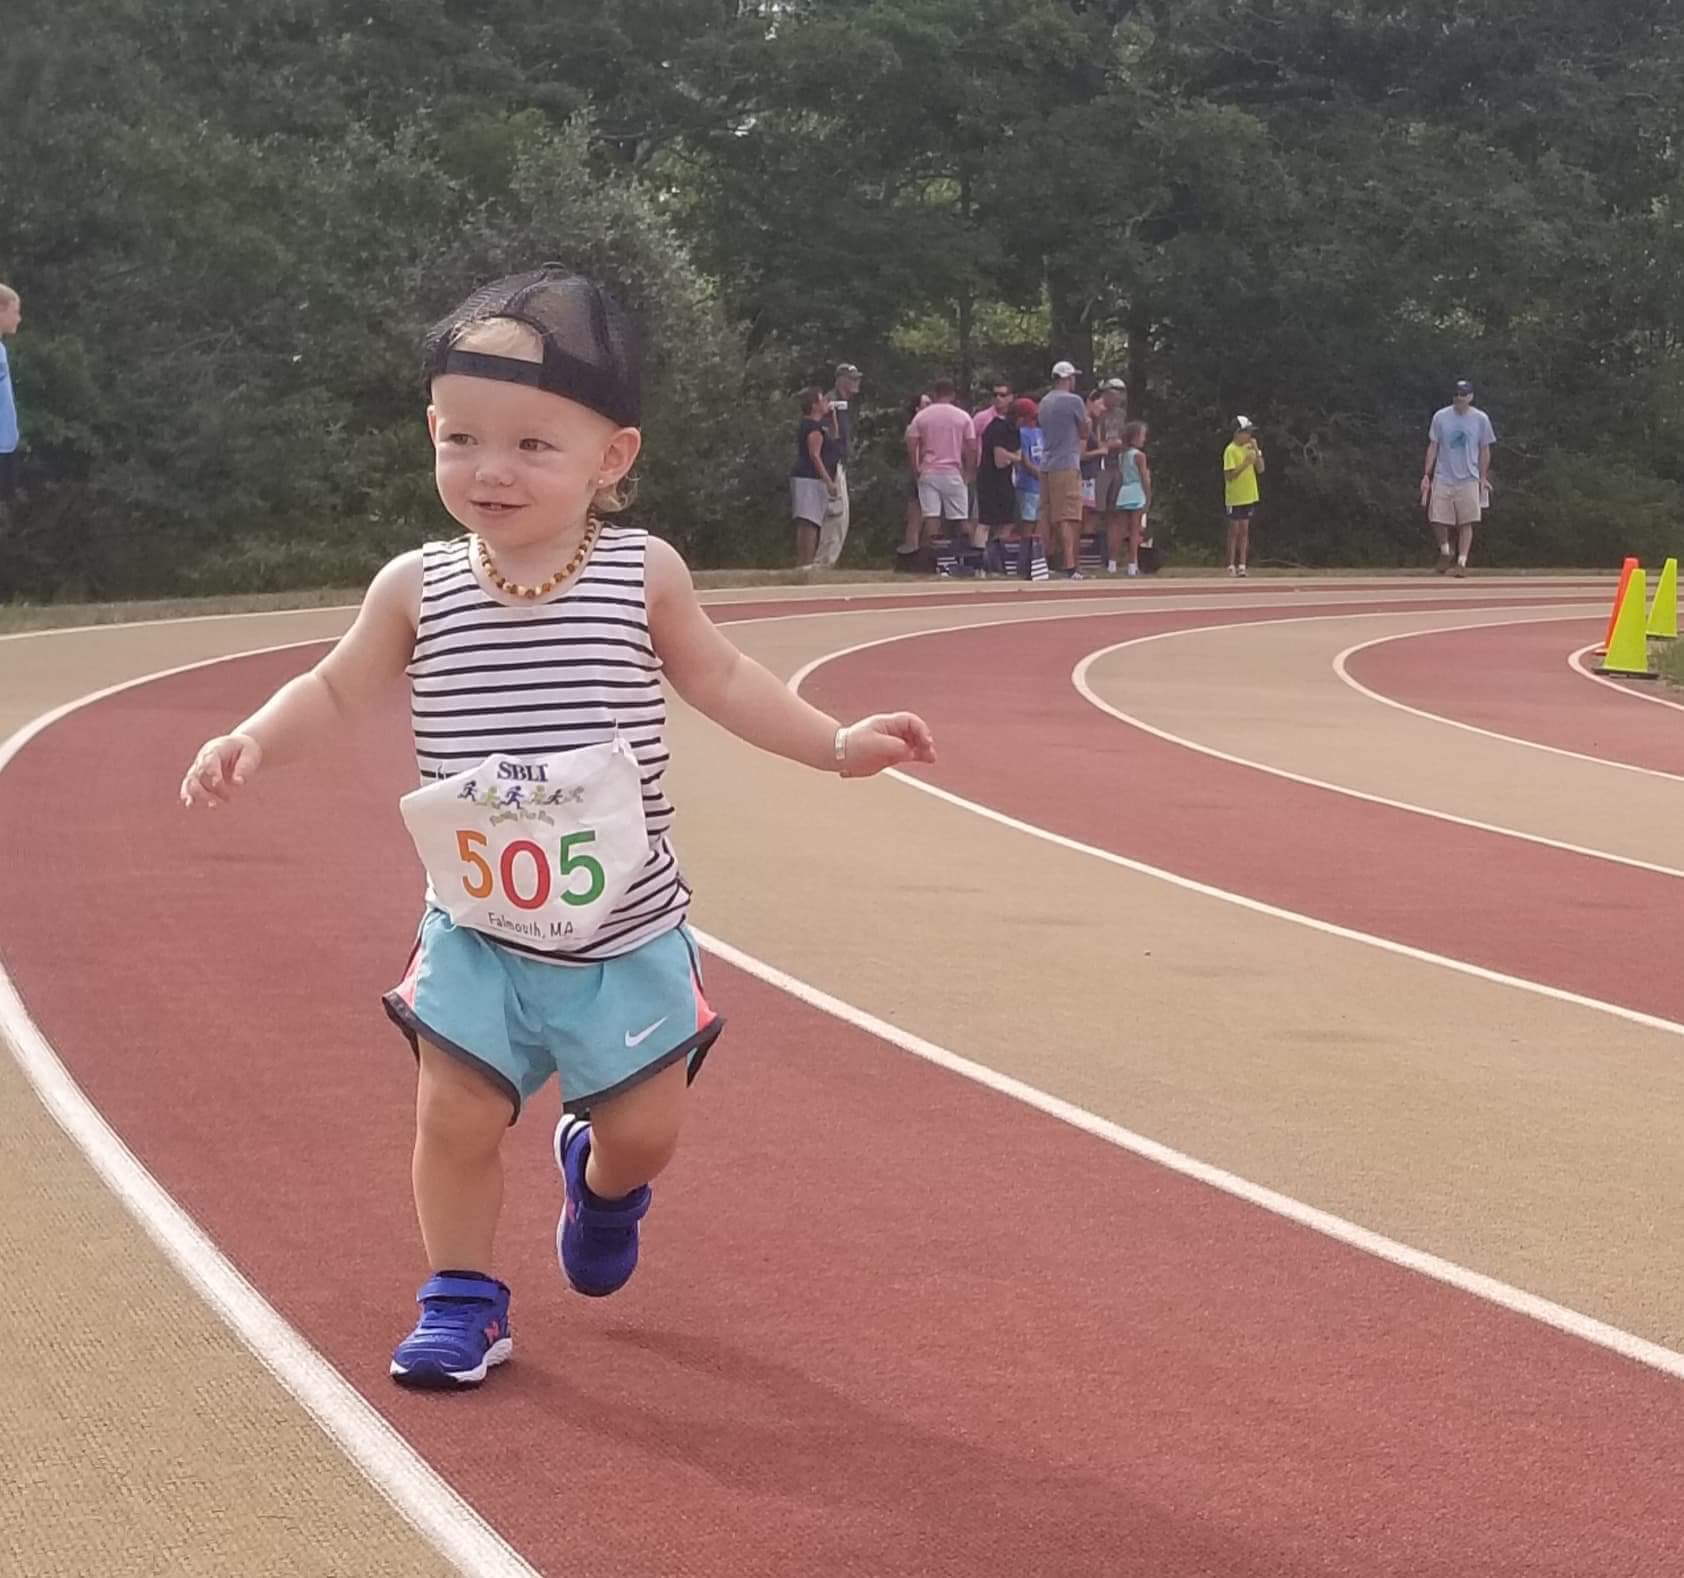 Here's Scarlett, FIT Founder Kelly McLay's daughter, on the track and keeping her paces in check. 😉